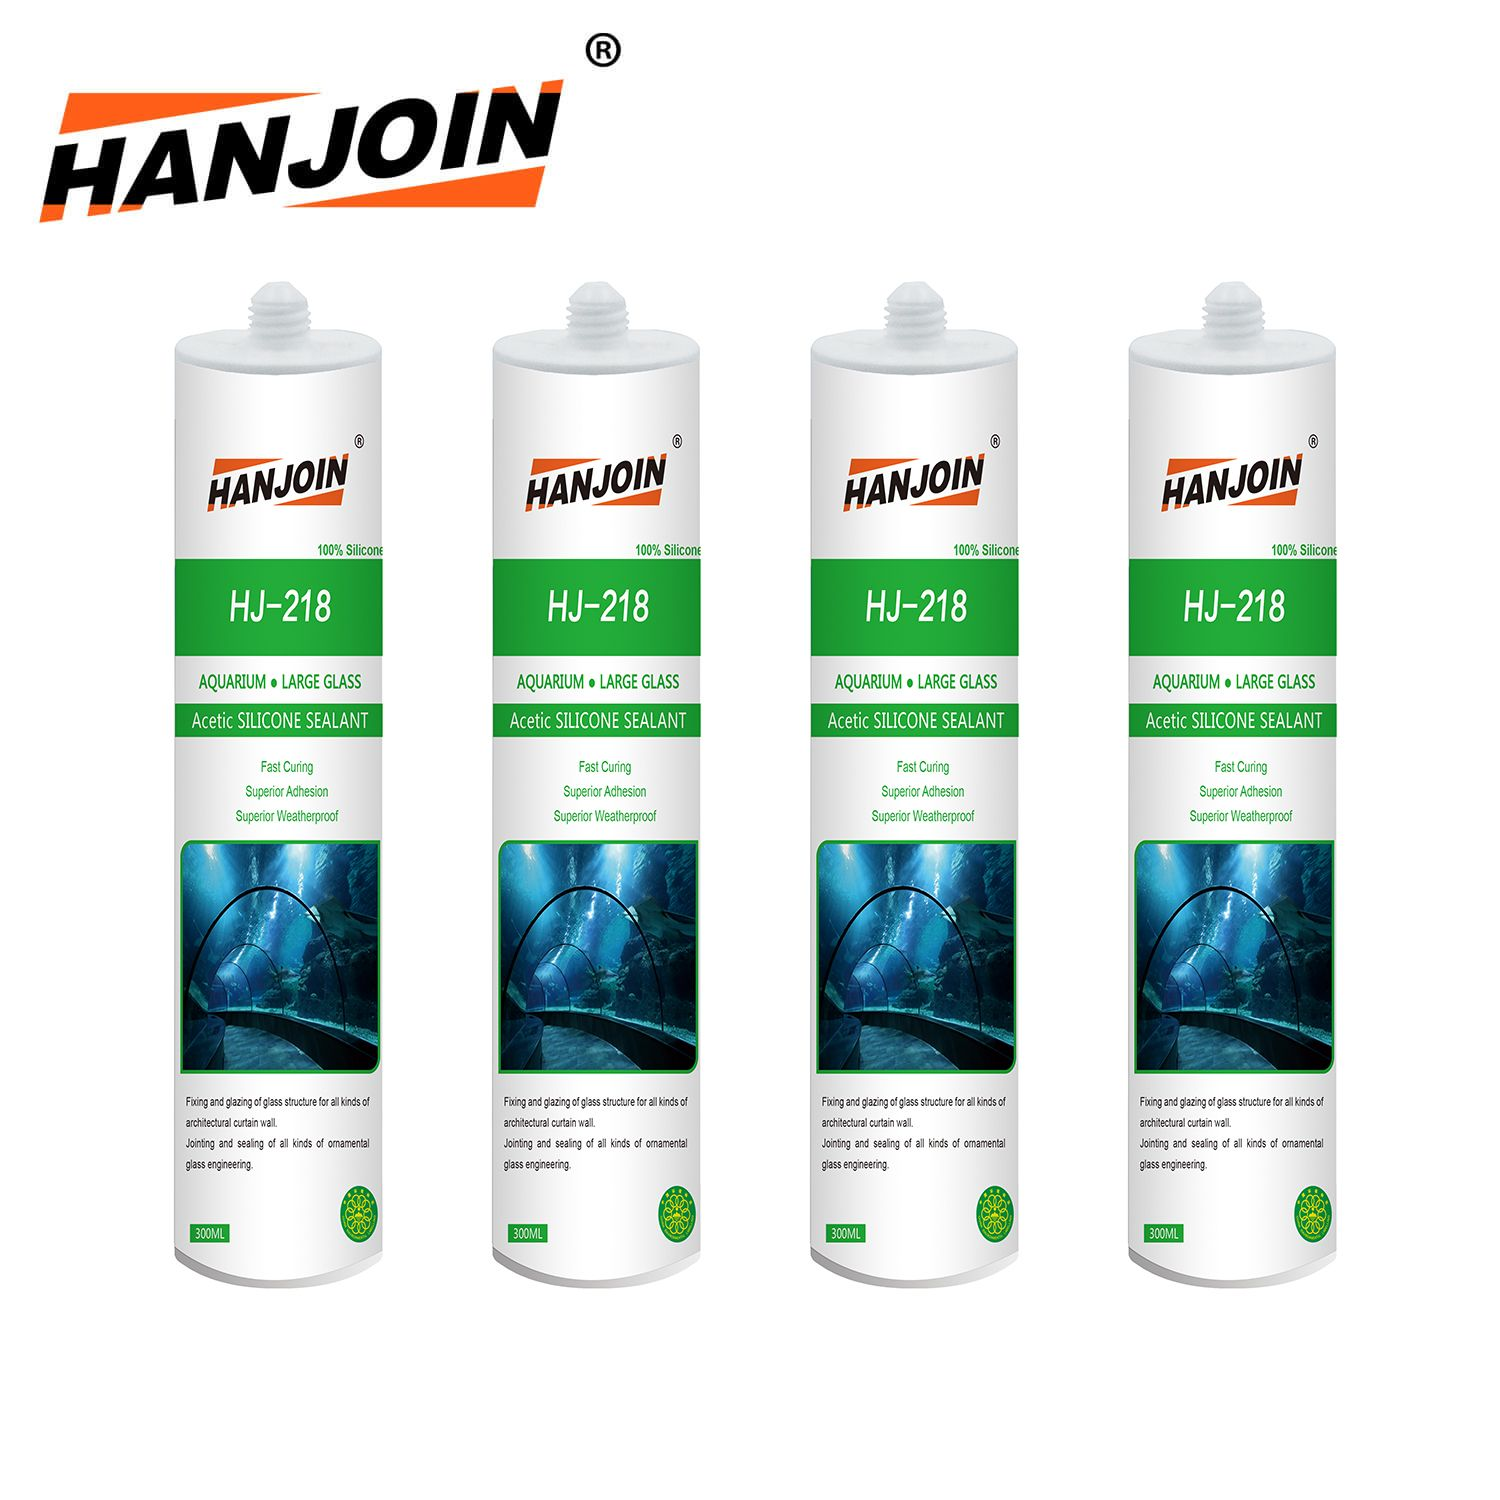 Acetic Aquarium Structural Silicone Sealant Hj218 Cartridge 300ml Sealant Aquarium Silicone Fish Tank